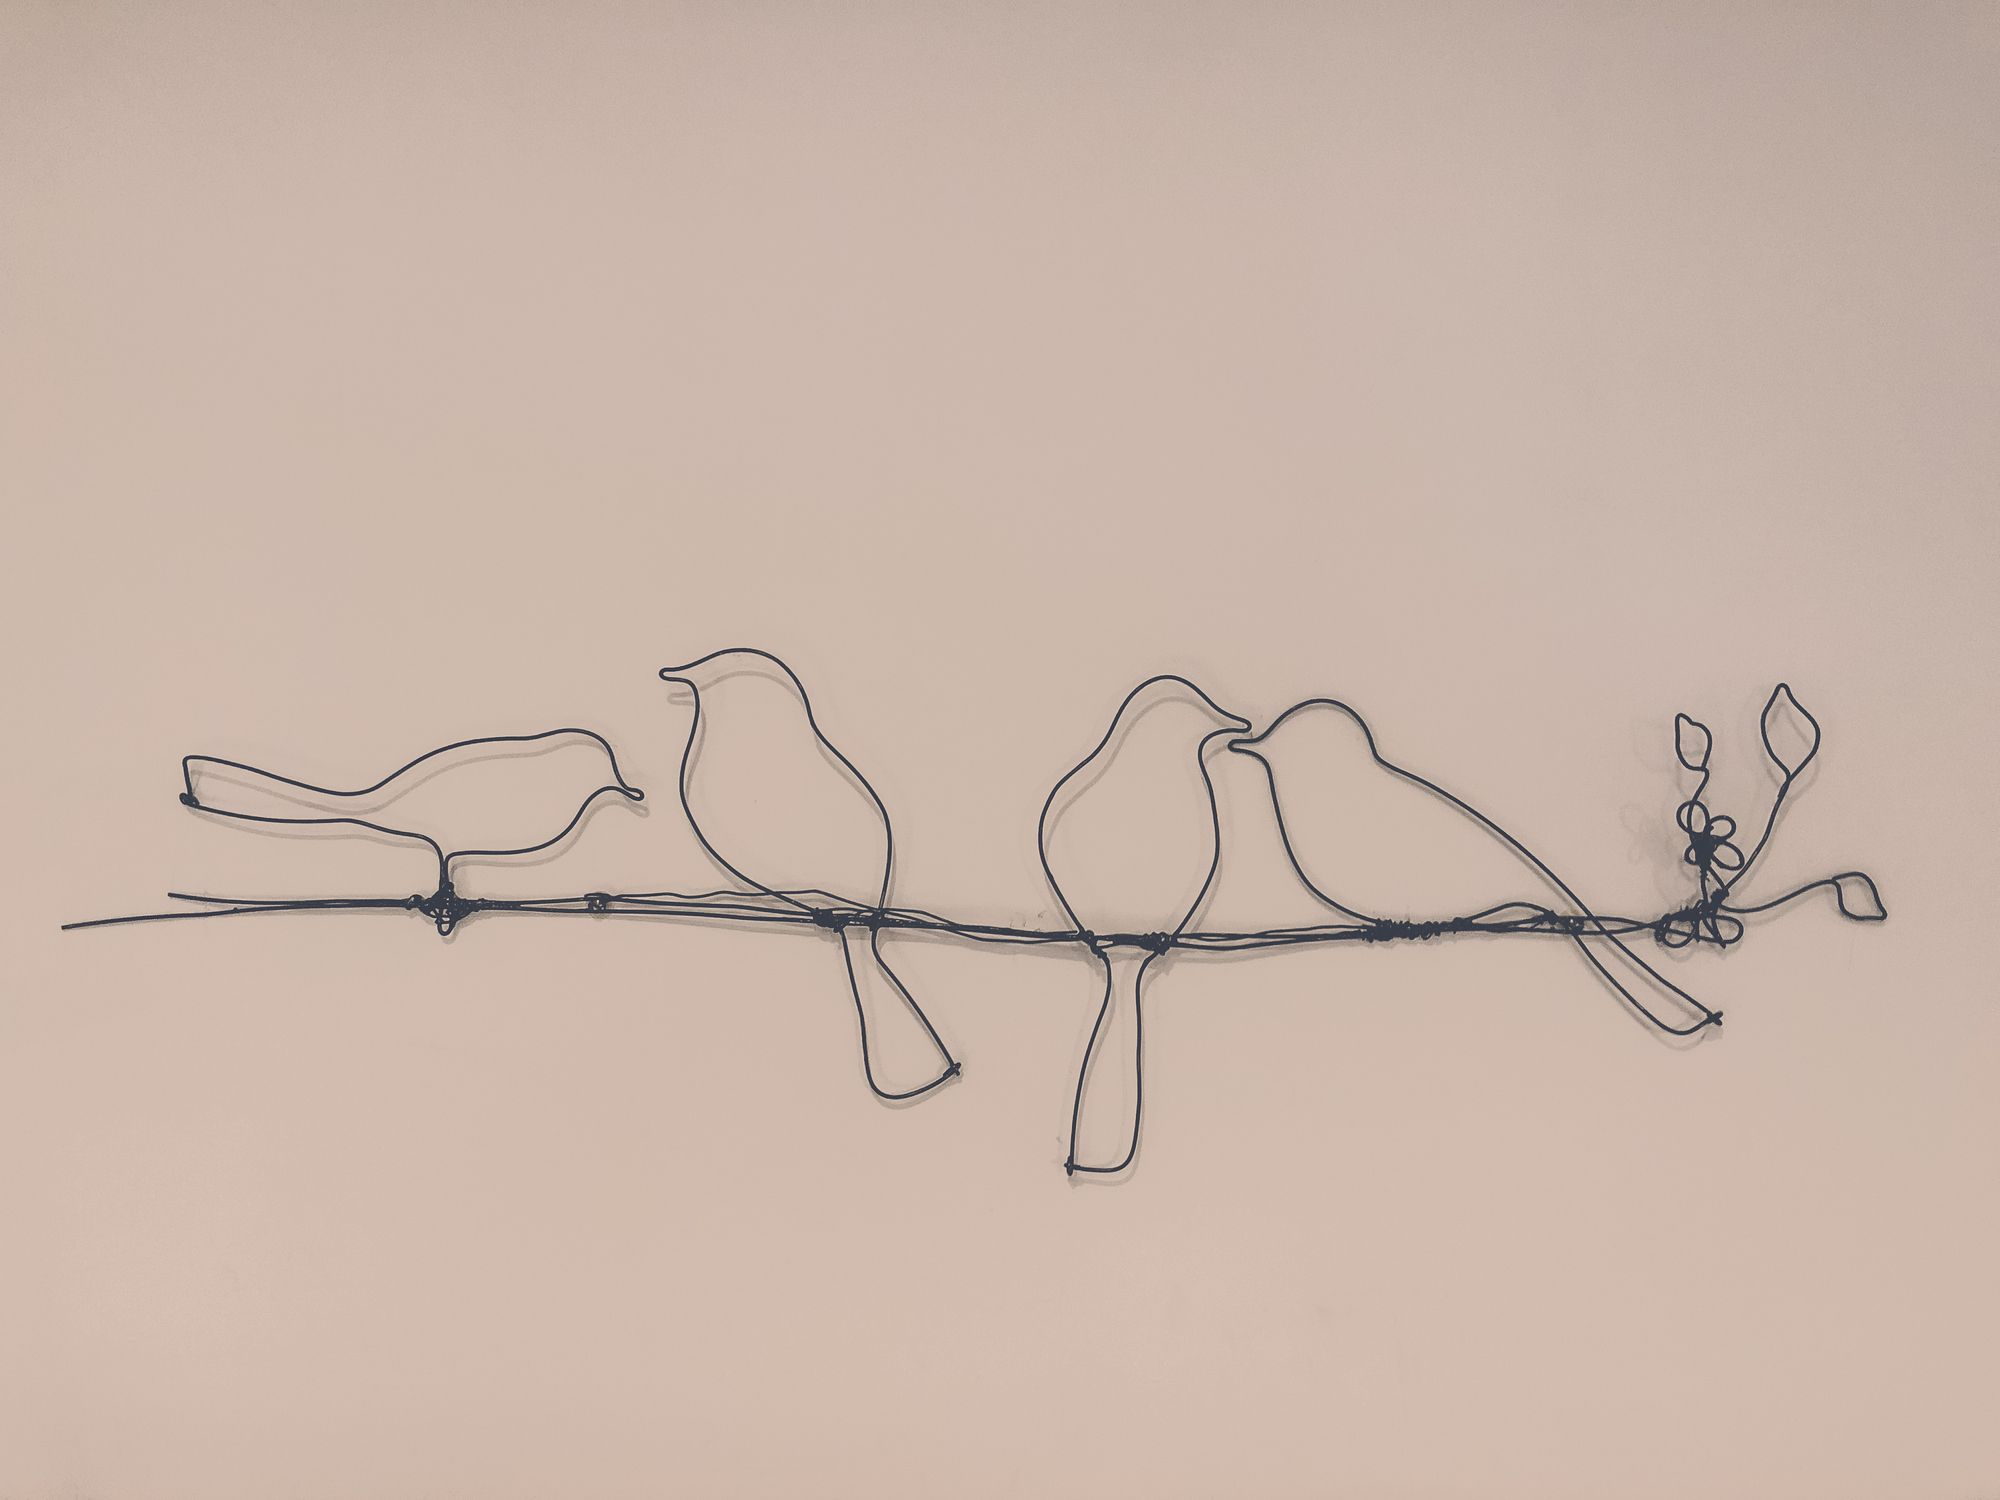 Abstract wire bird wall art mounted on a wall.